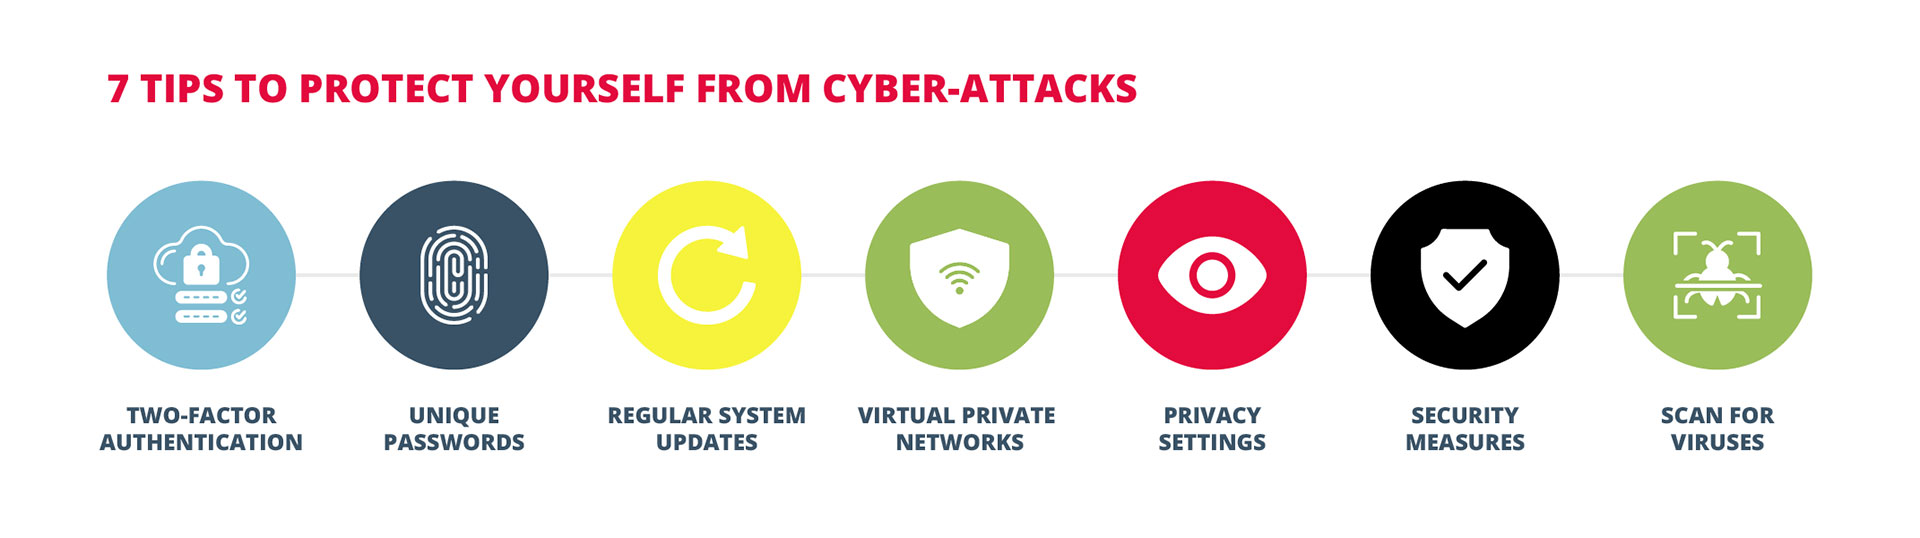 7 TIPS TO PROTECT YOURSELF FROM CYBER-ATTACKS